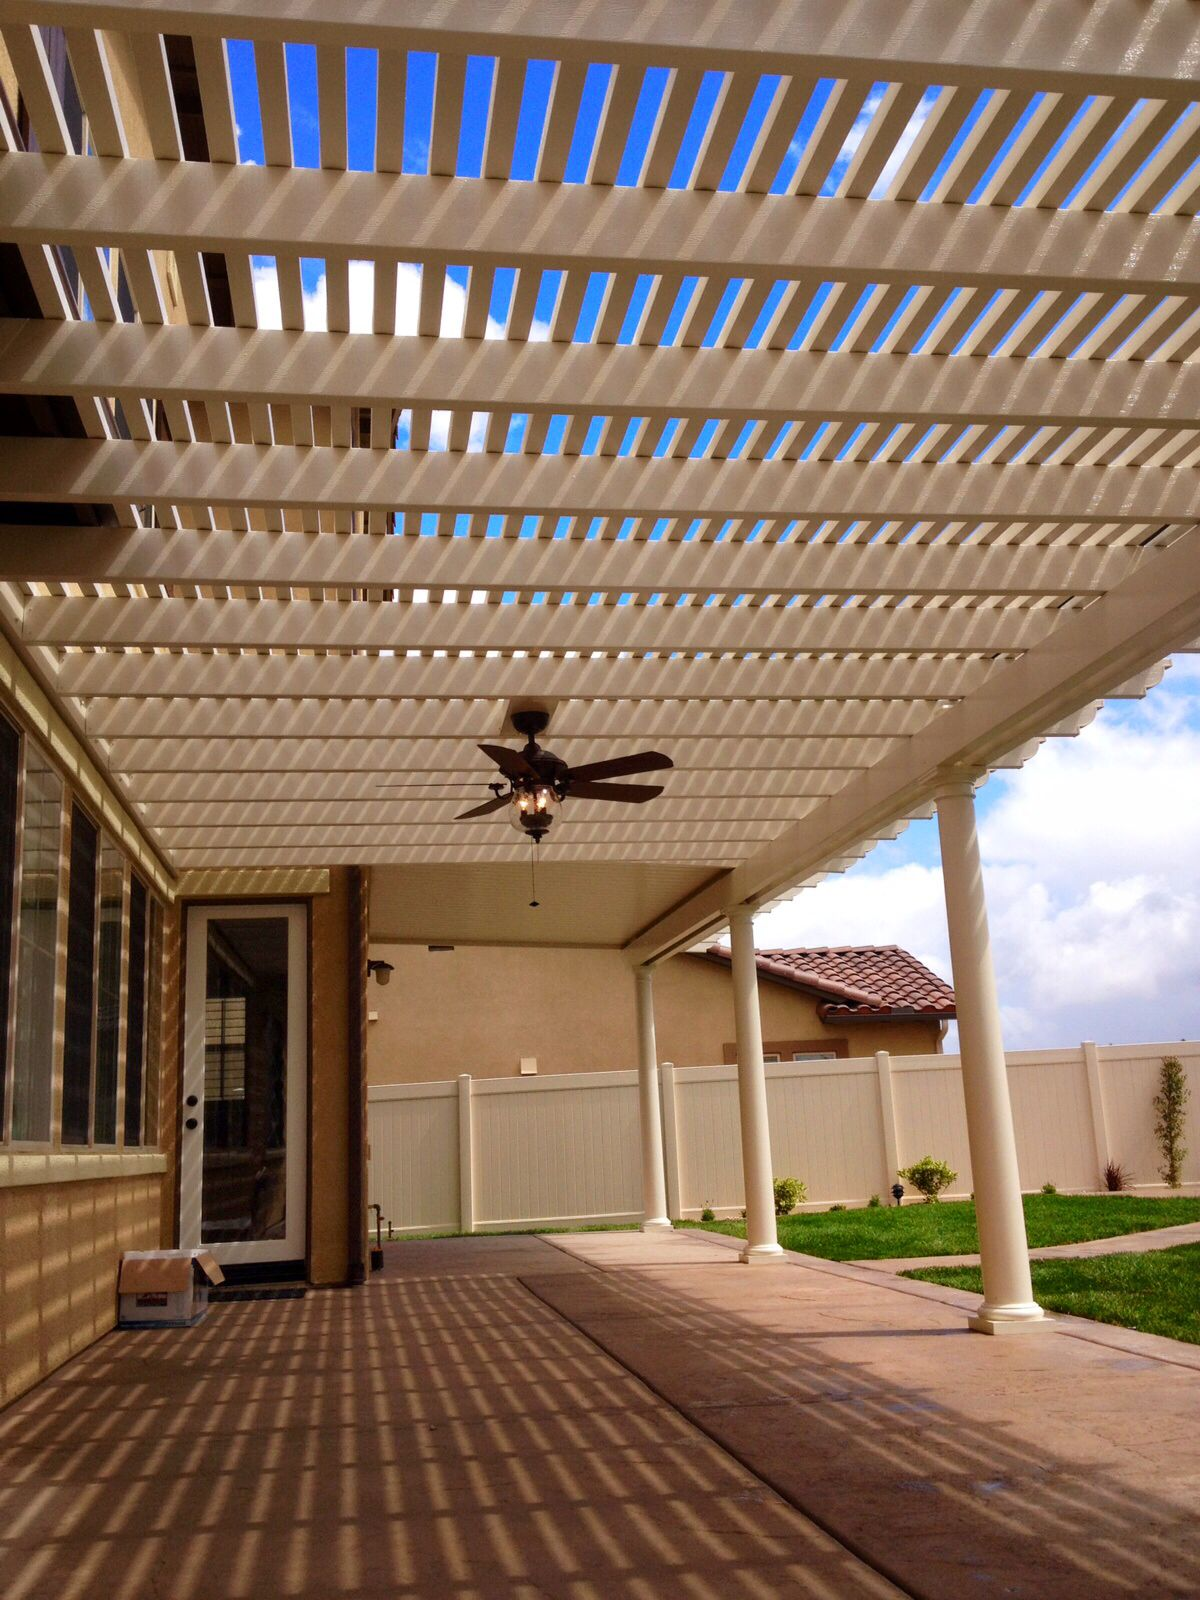 Diy alumawood patio covers Contact us and let us help you build